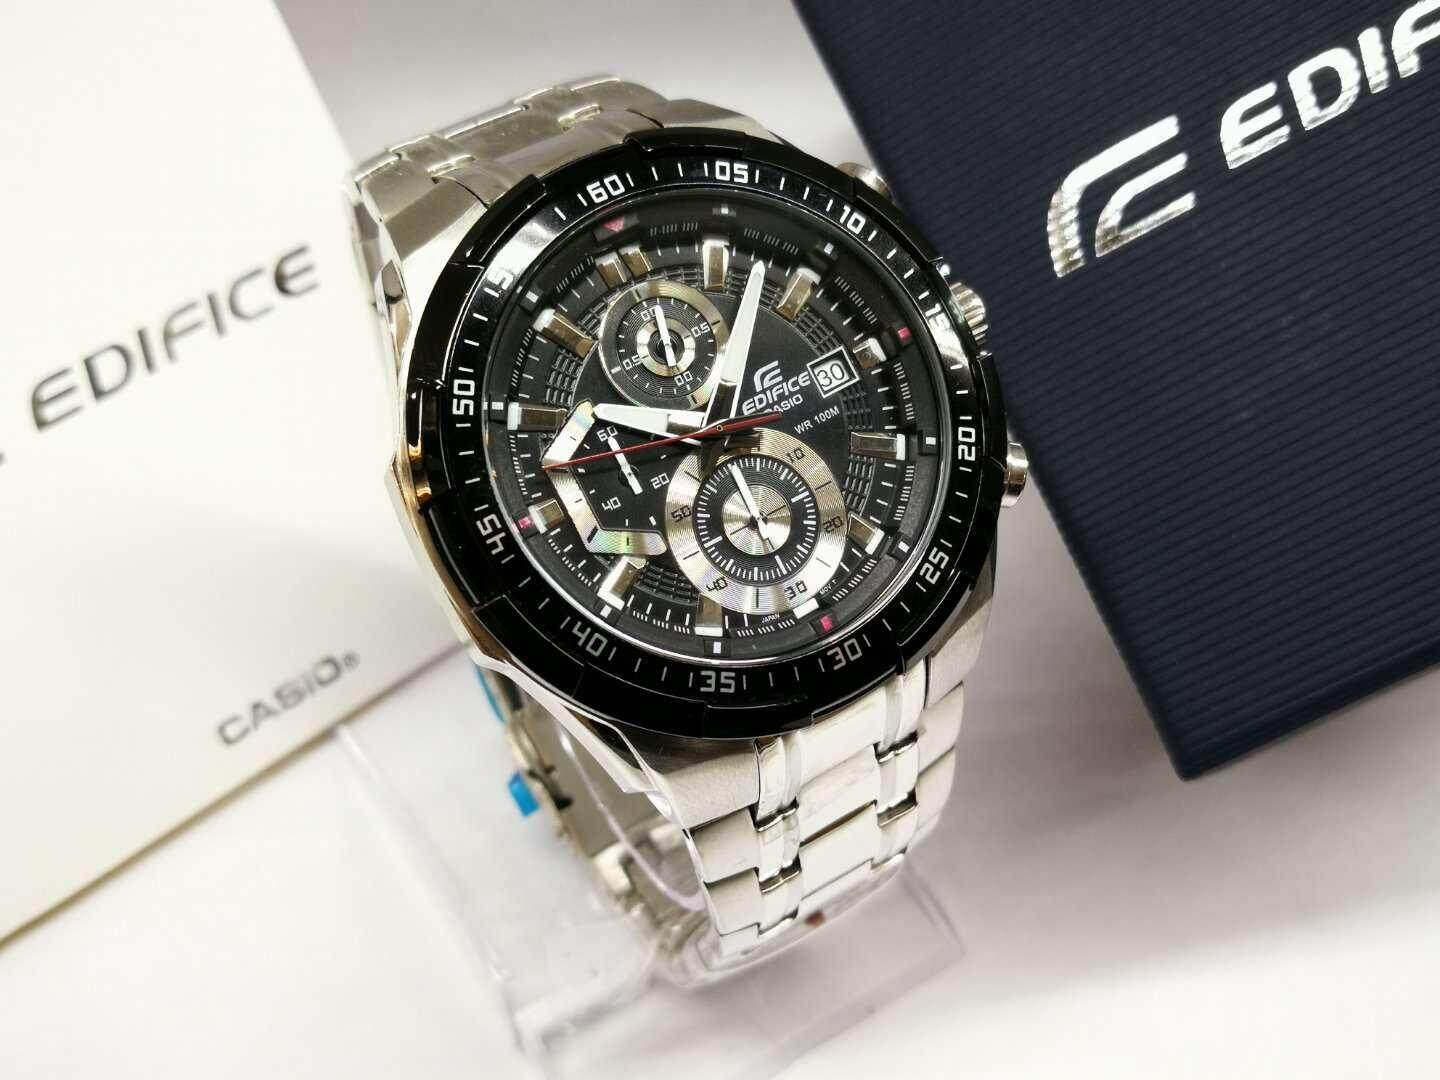 Casio Edifice Watches Price In Malaysia Best Efr 529d 1a2vdf Jam Tangan Pria Stainless Steel Black Lazada